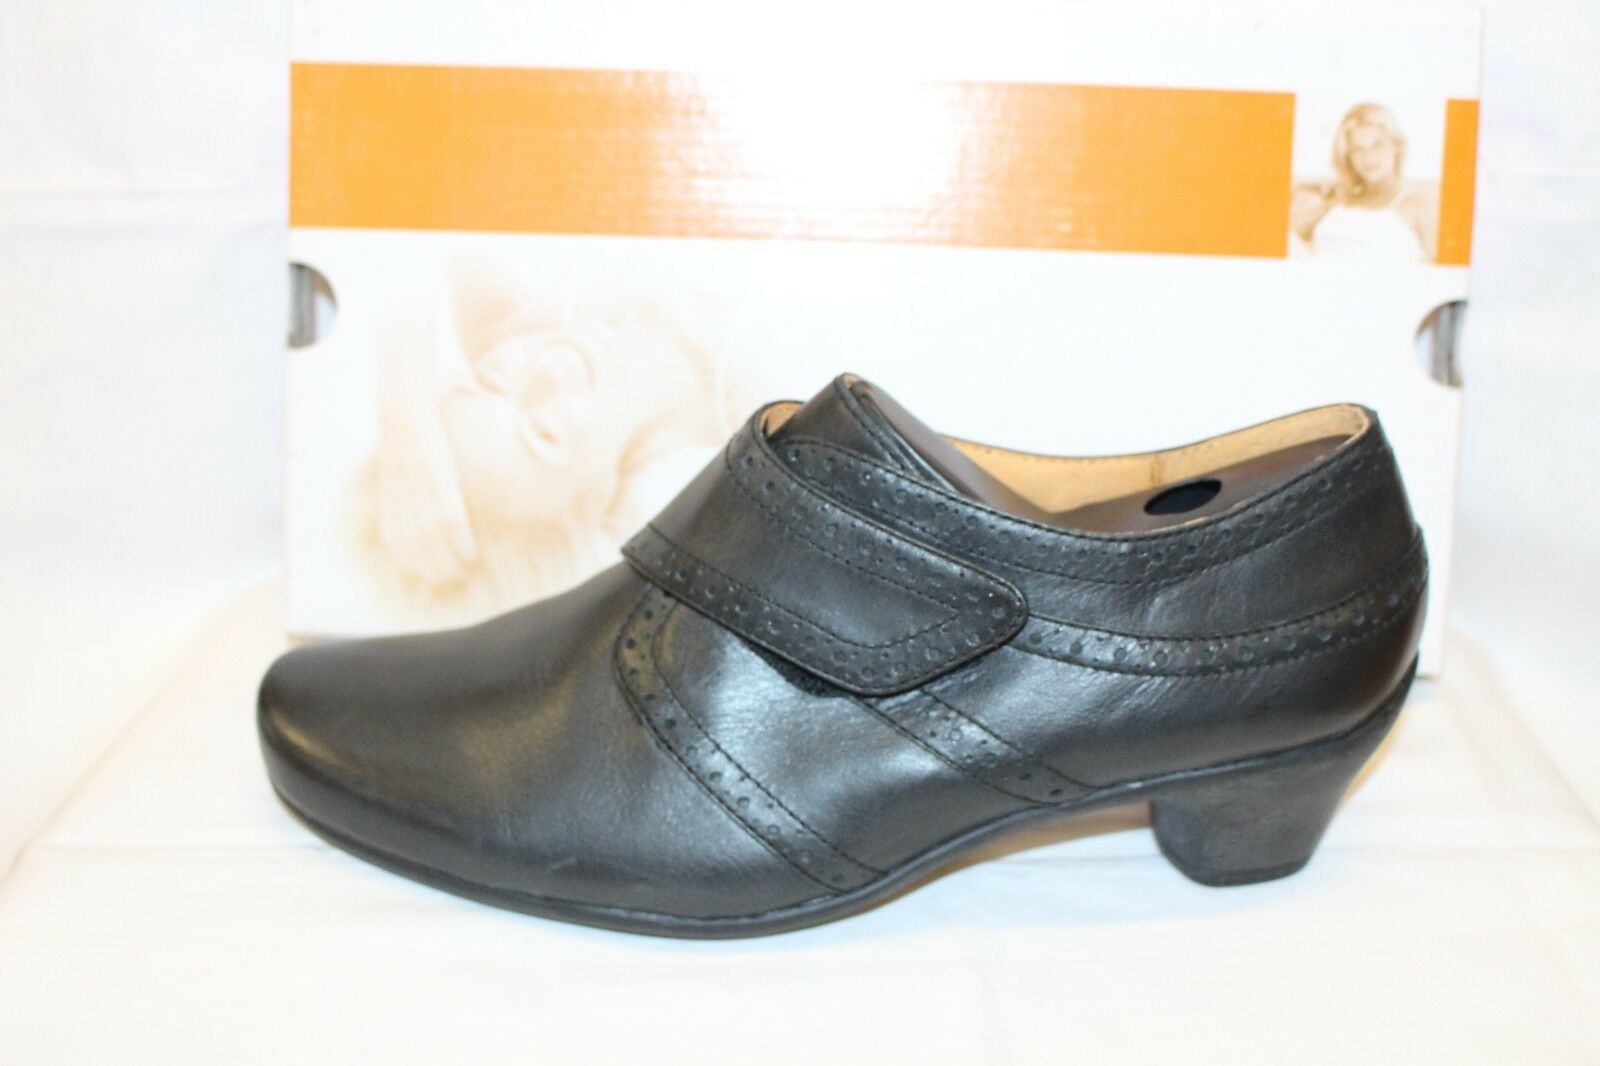 LADIES SHOES/FOOTWEAR - Theresia M  Judy black court shoe